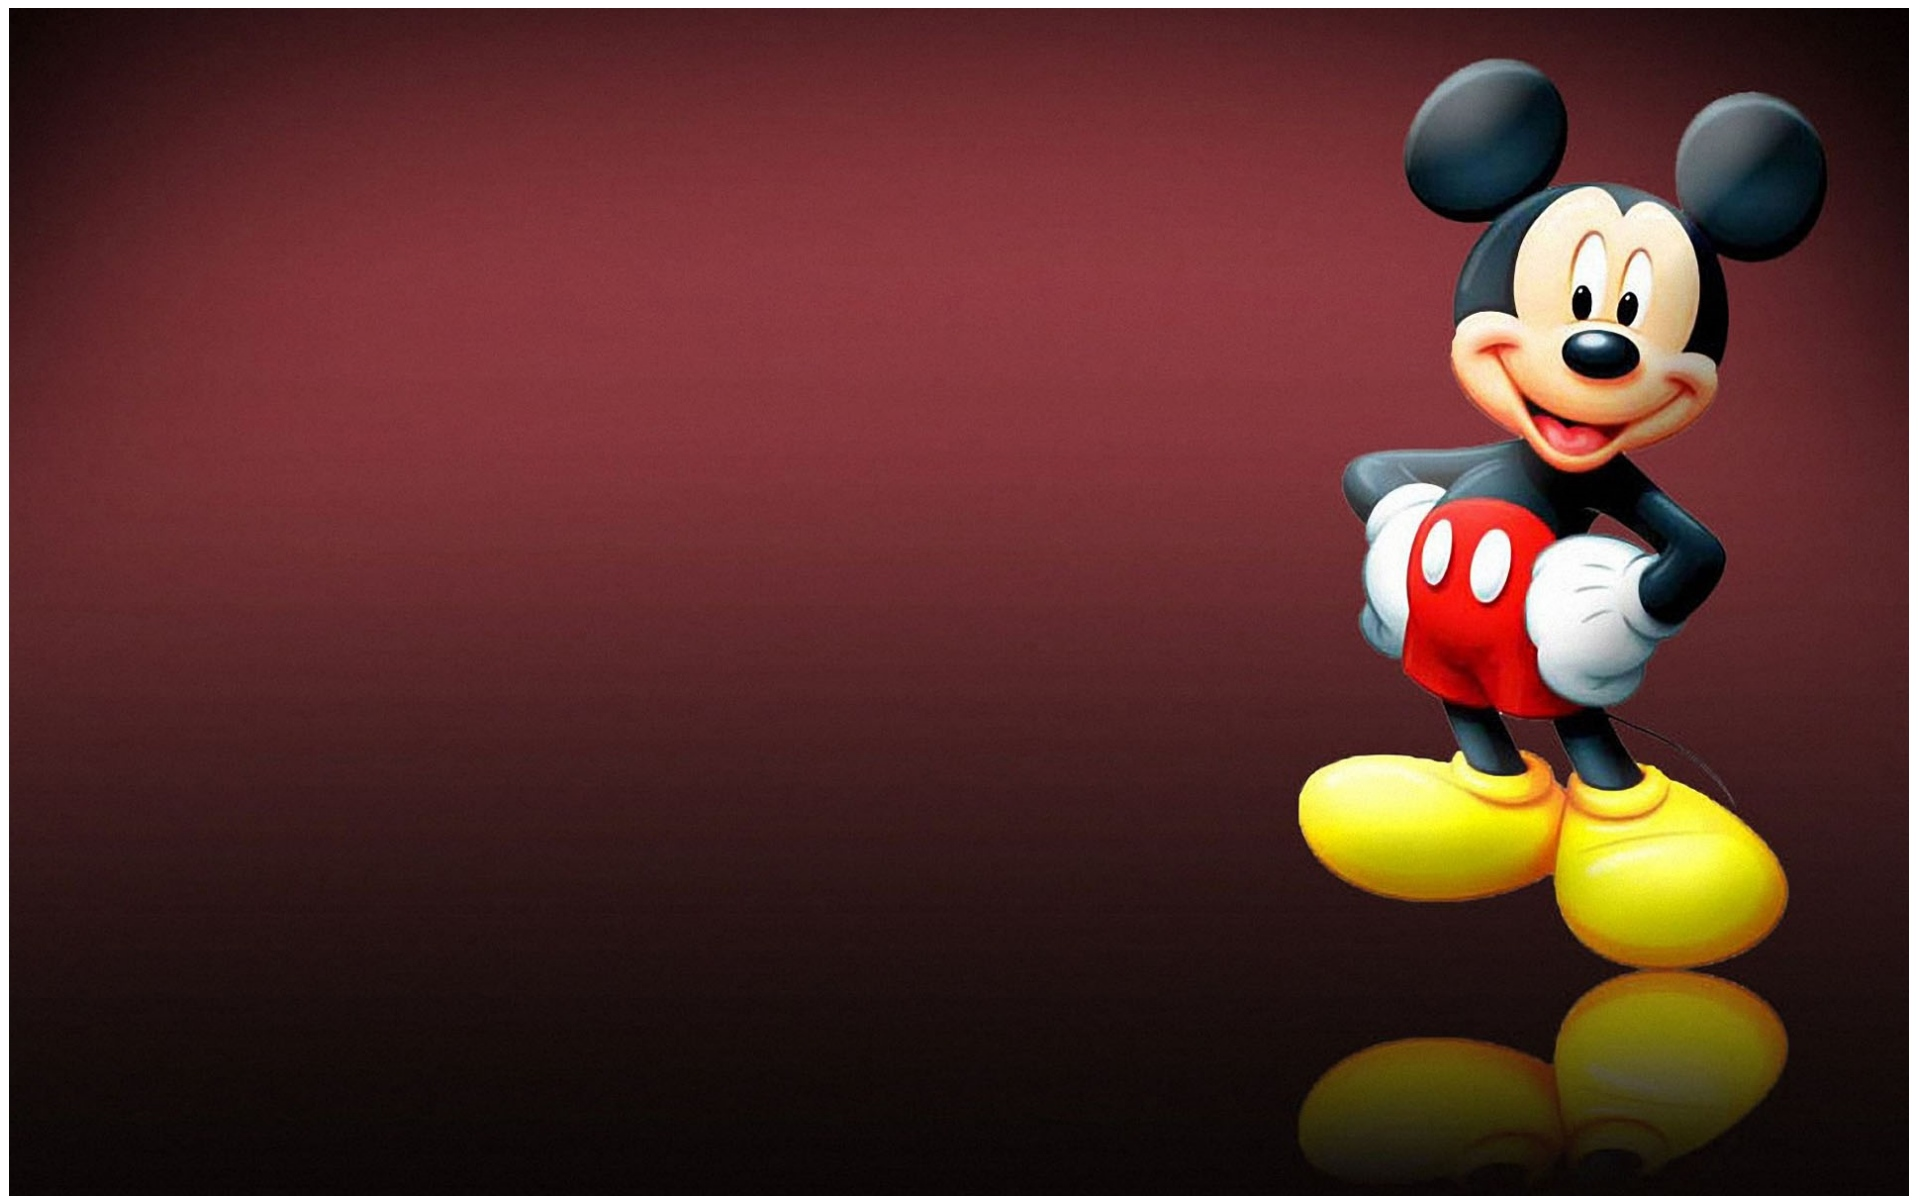 Download Mickey Mouse Cartoons HD Wallpapers Pictures Images Free for ...